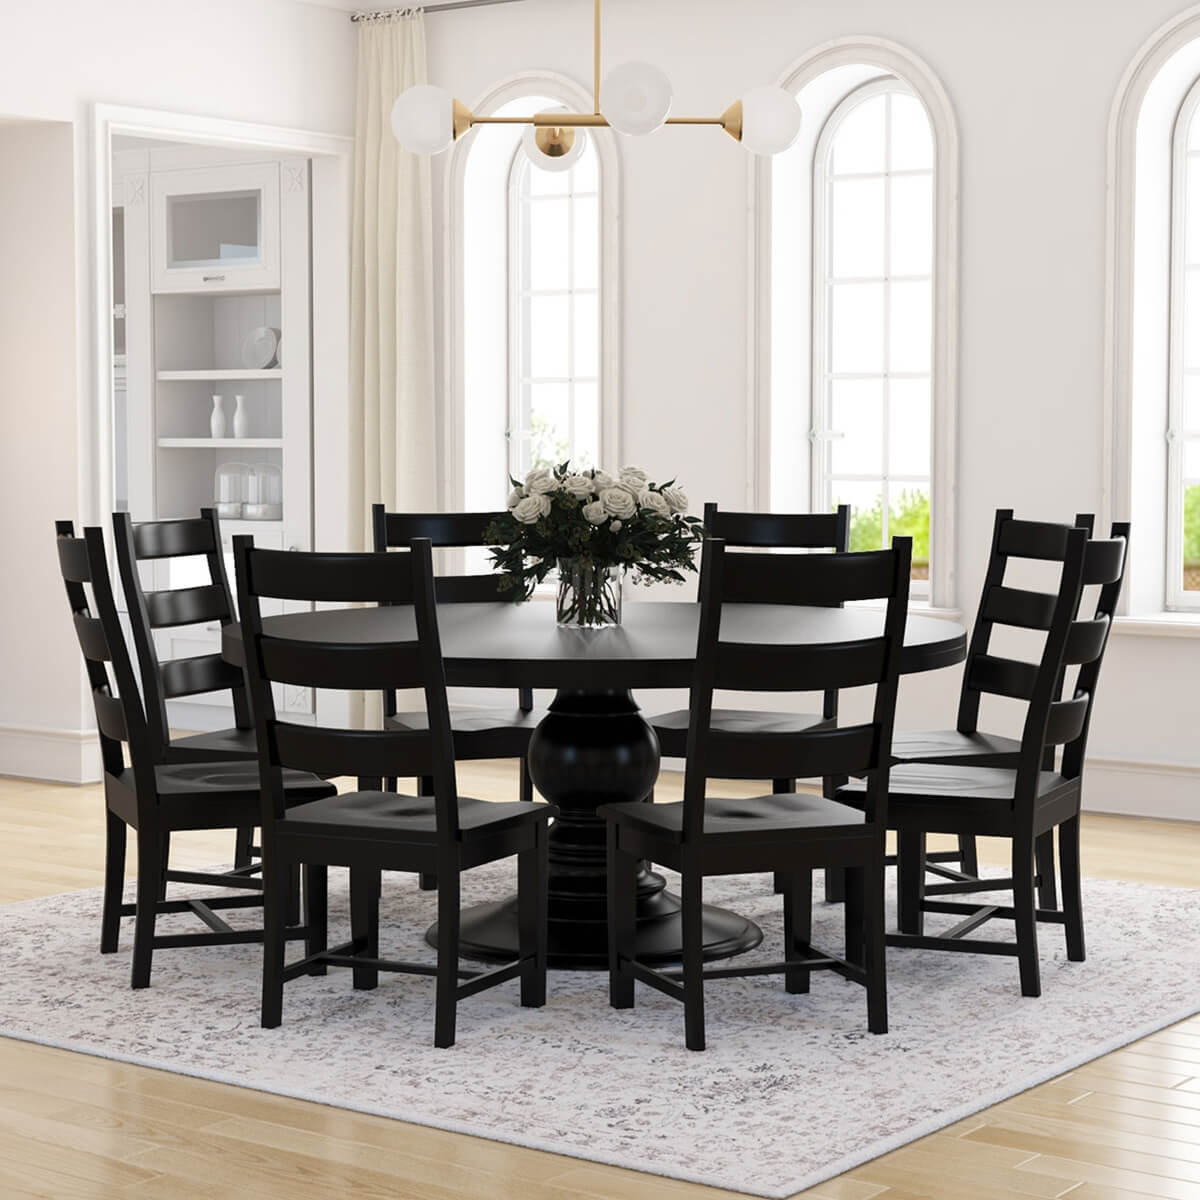 Rustic Dining Room Table Sets: Nottingham Rustic Solid Wood Black Round Dining Room Table Set